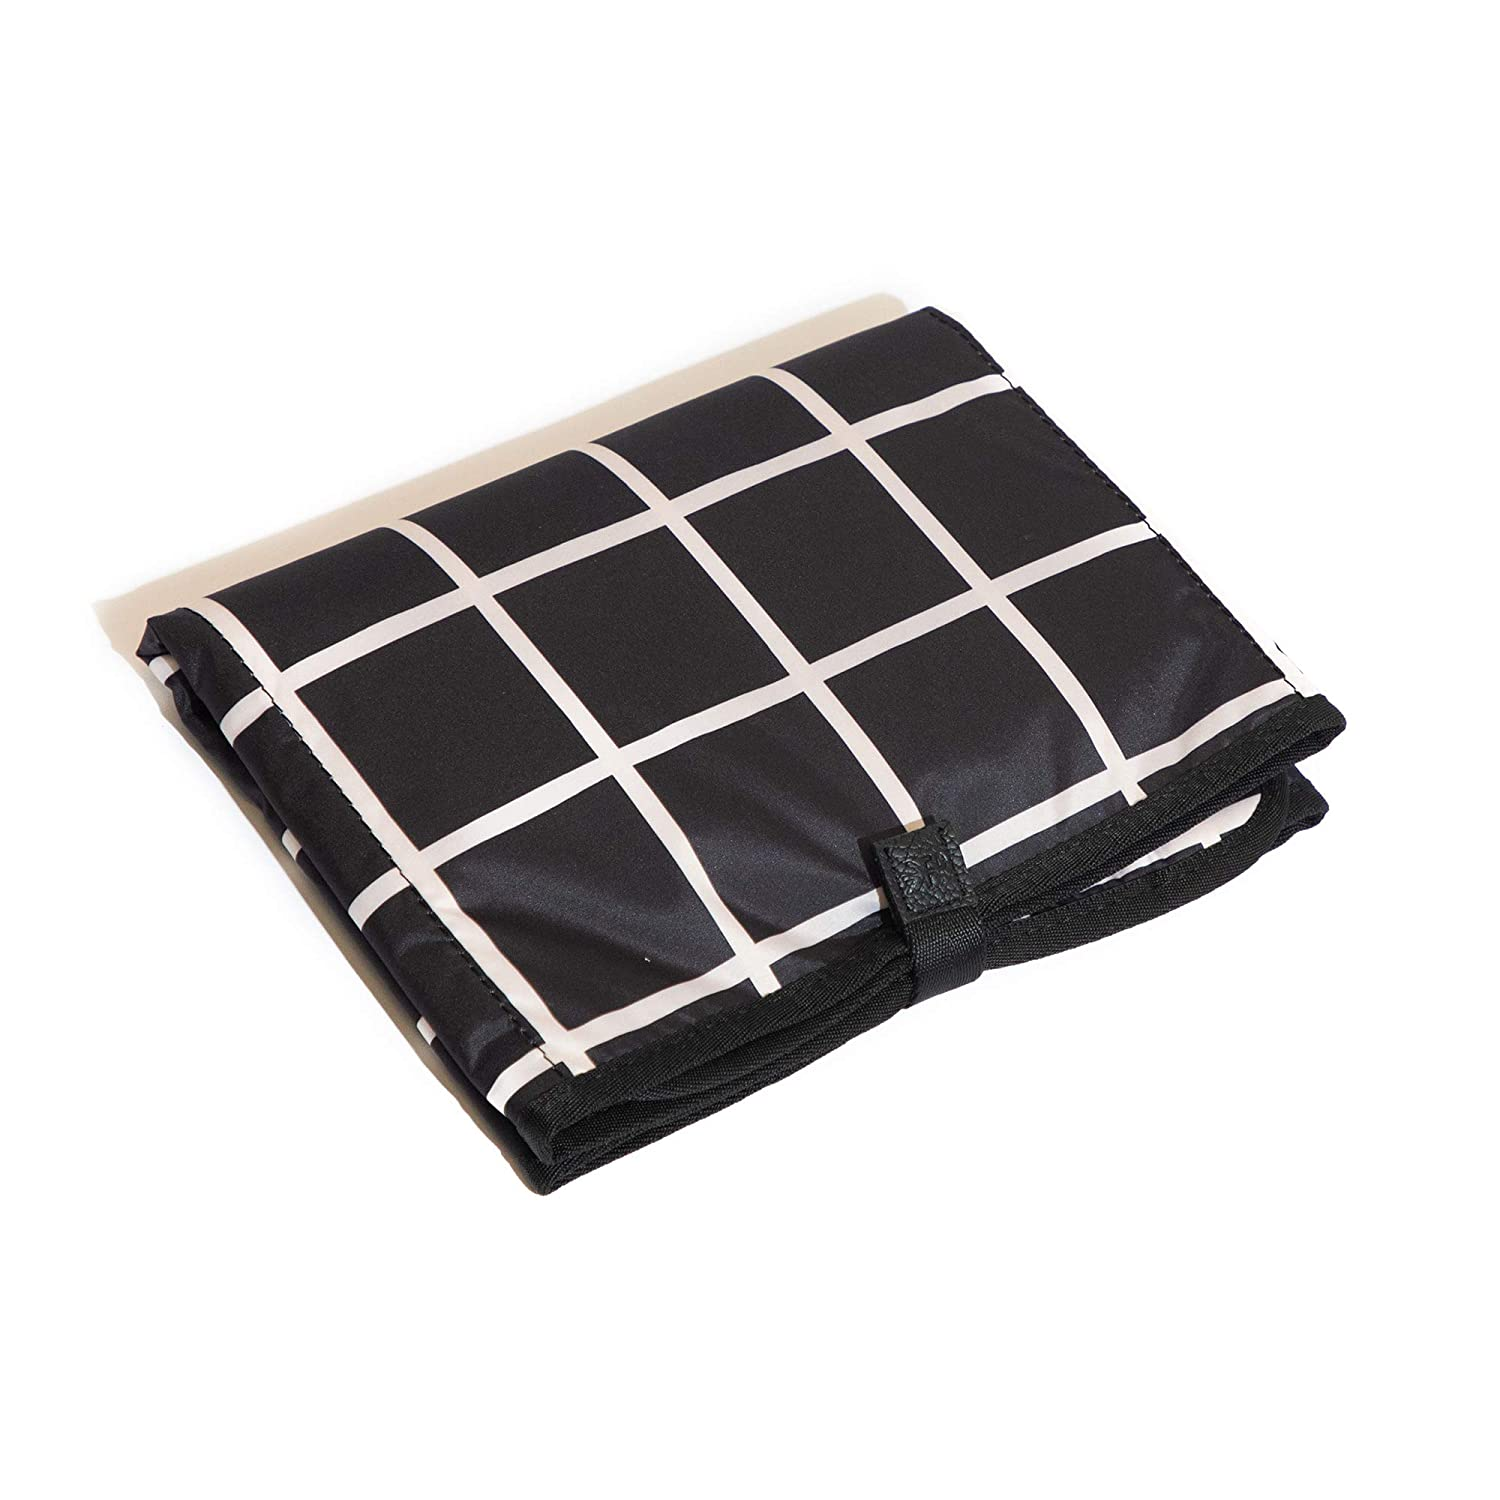 Freshly Picked - Bag Accessories - Changing Mat (Black)